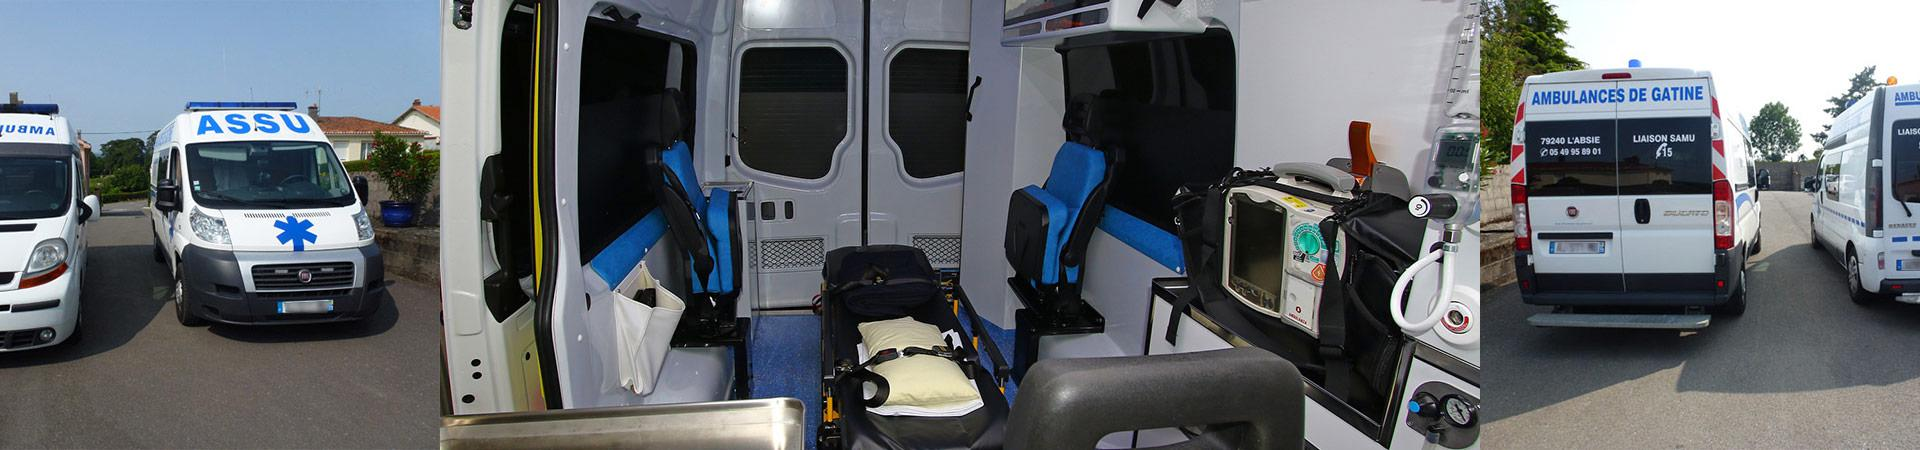 AMBULANCES DE GATINE